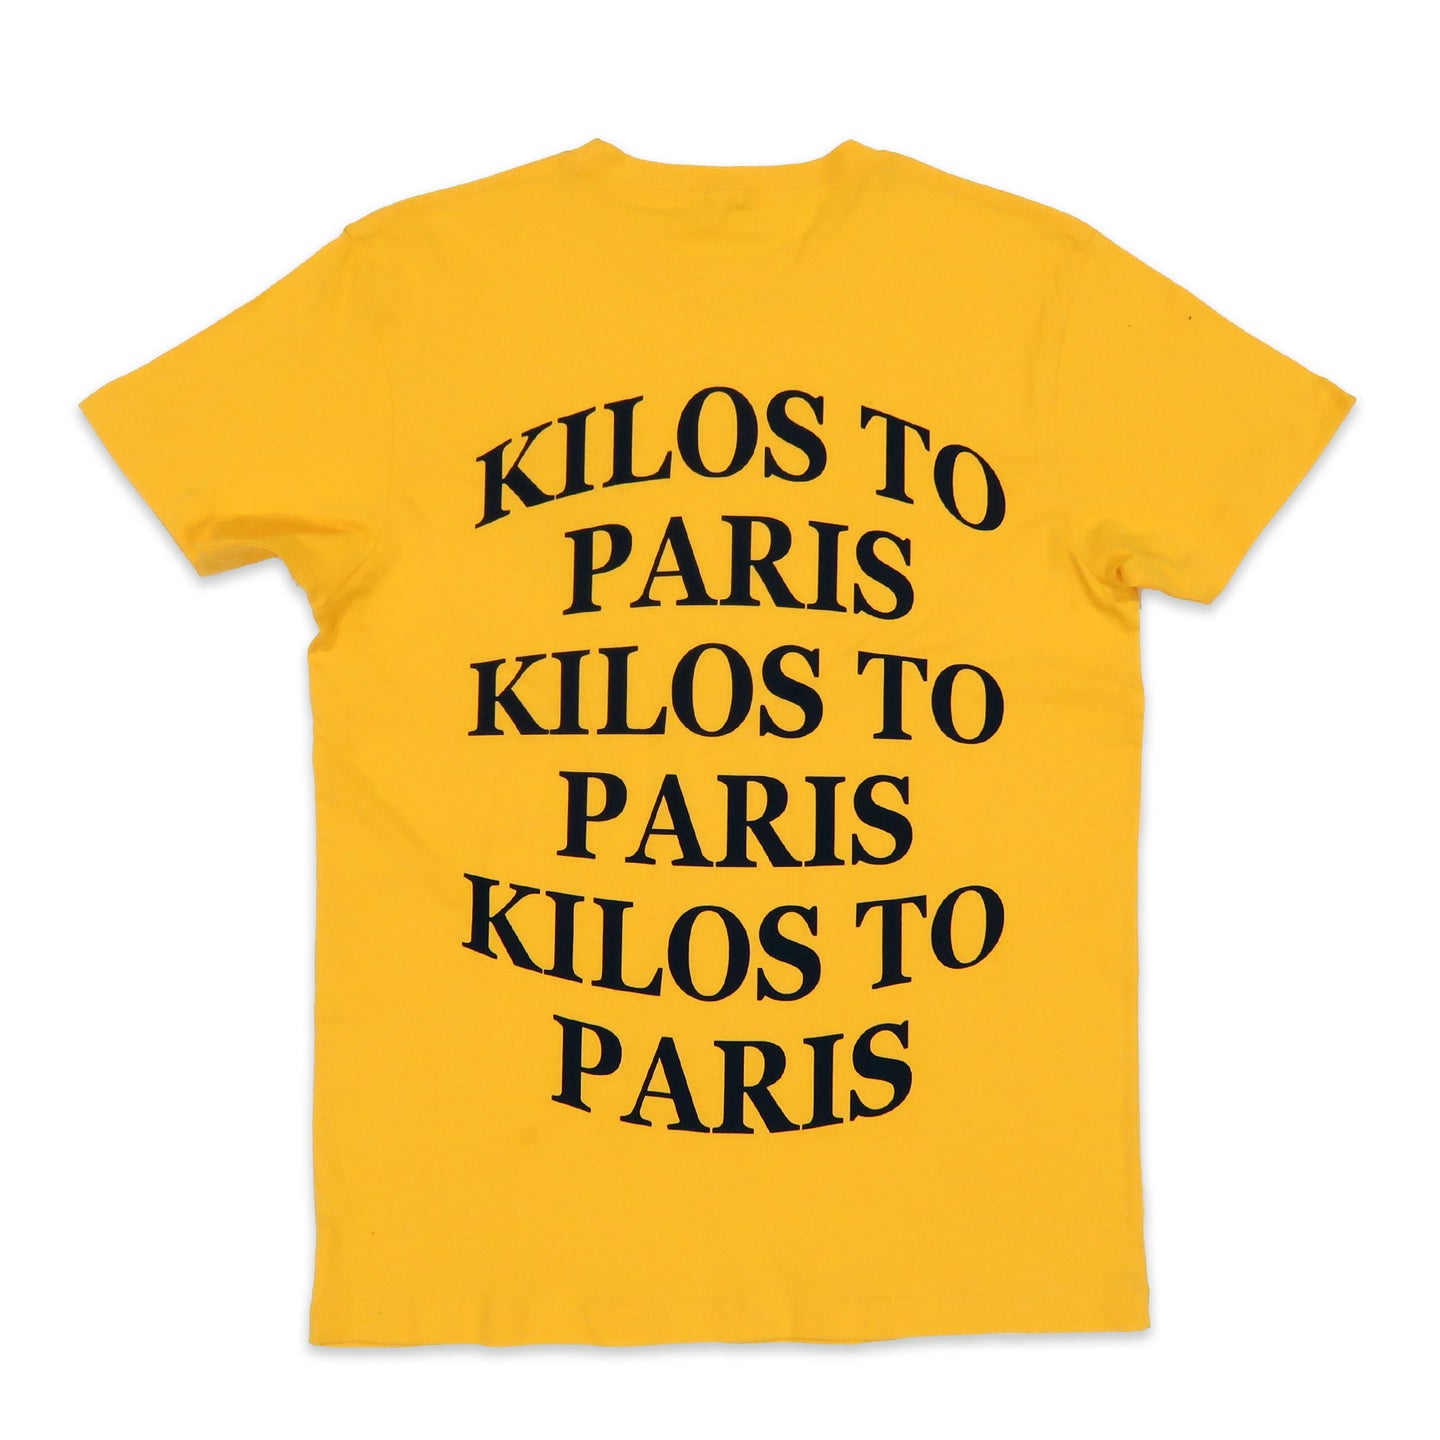 Kilos Basic Tee in Yellow and Black